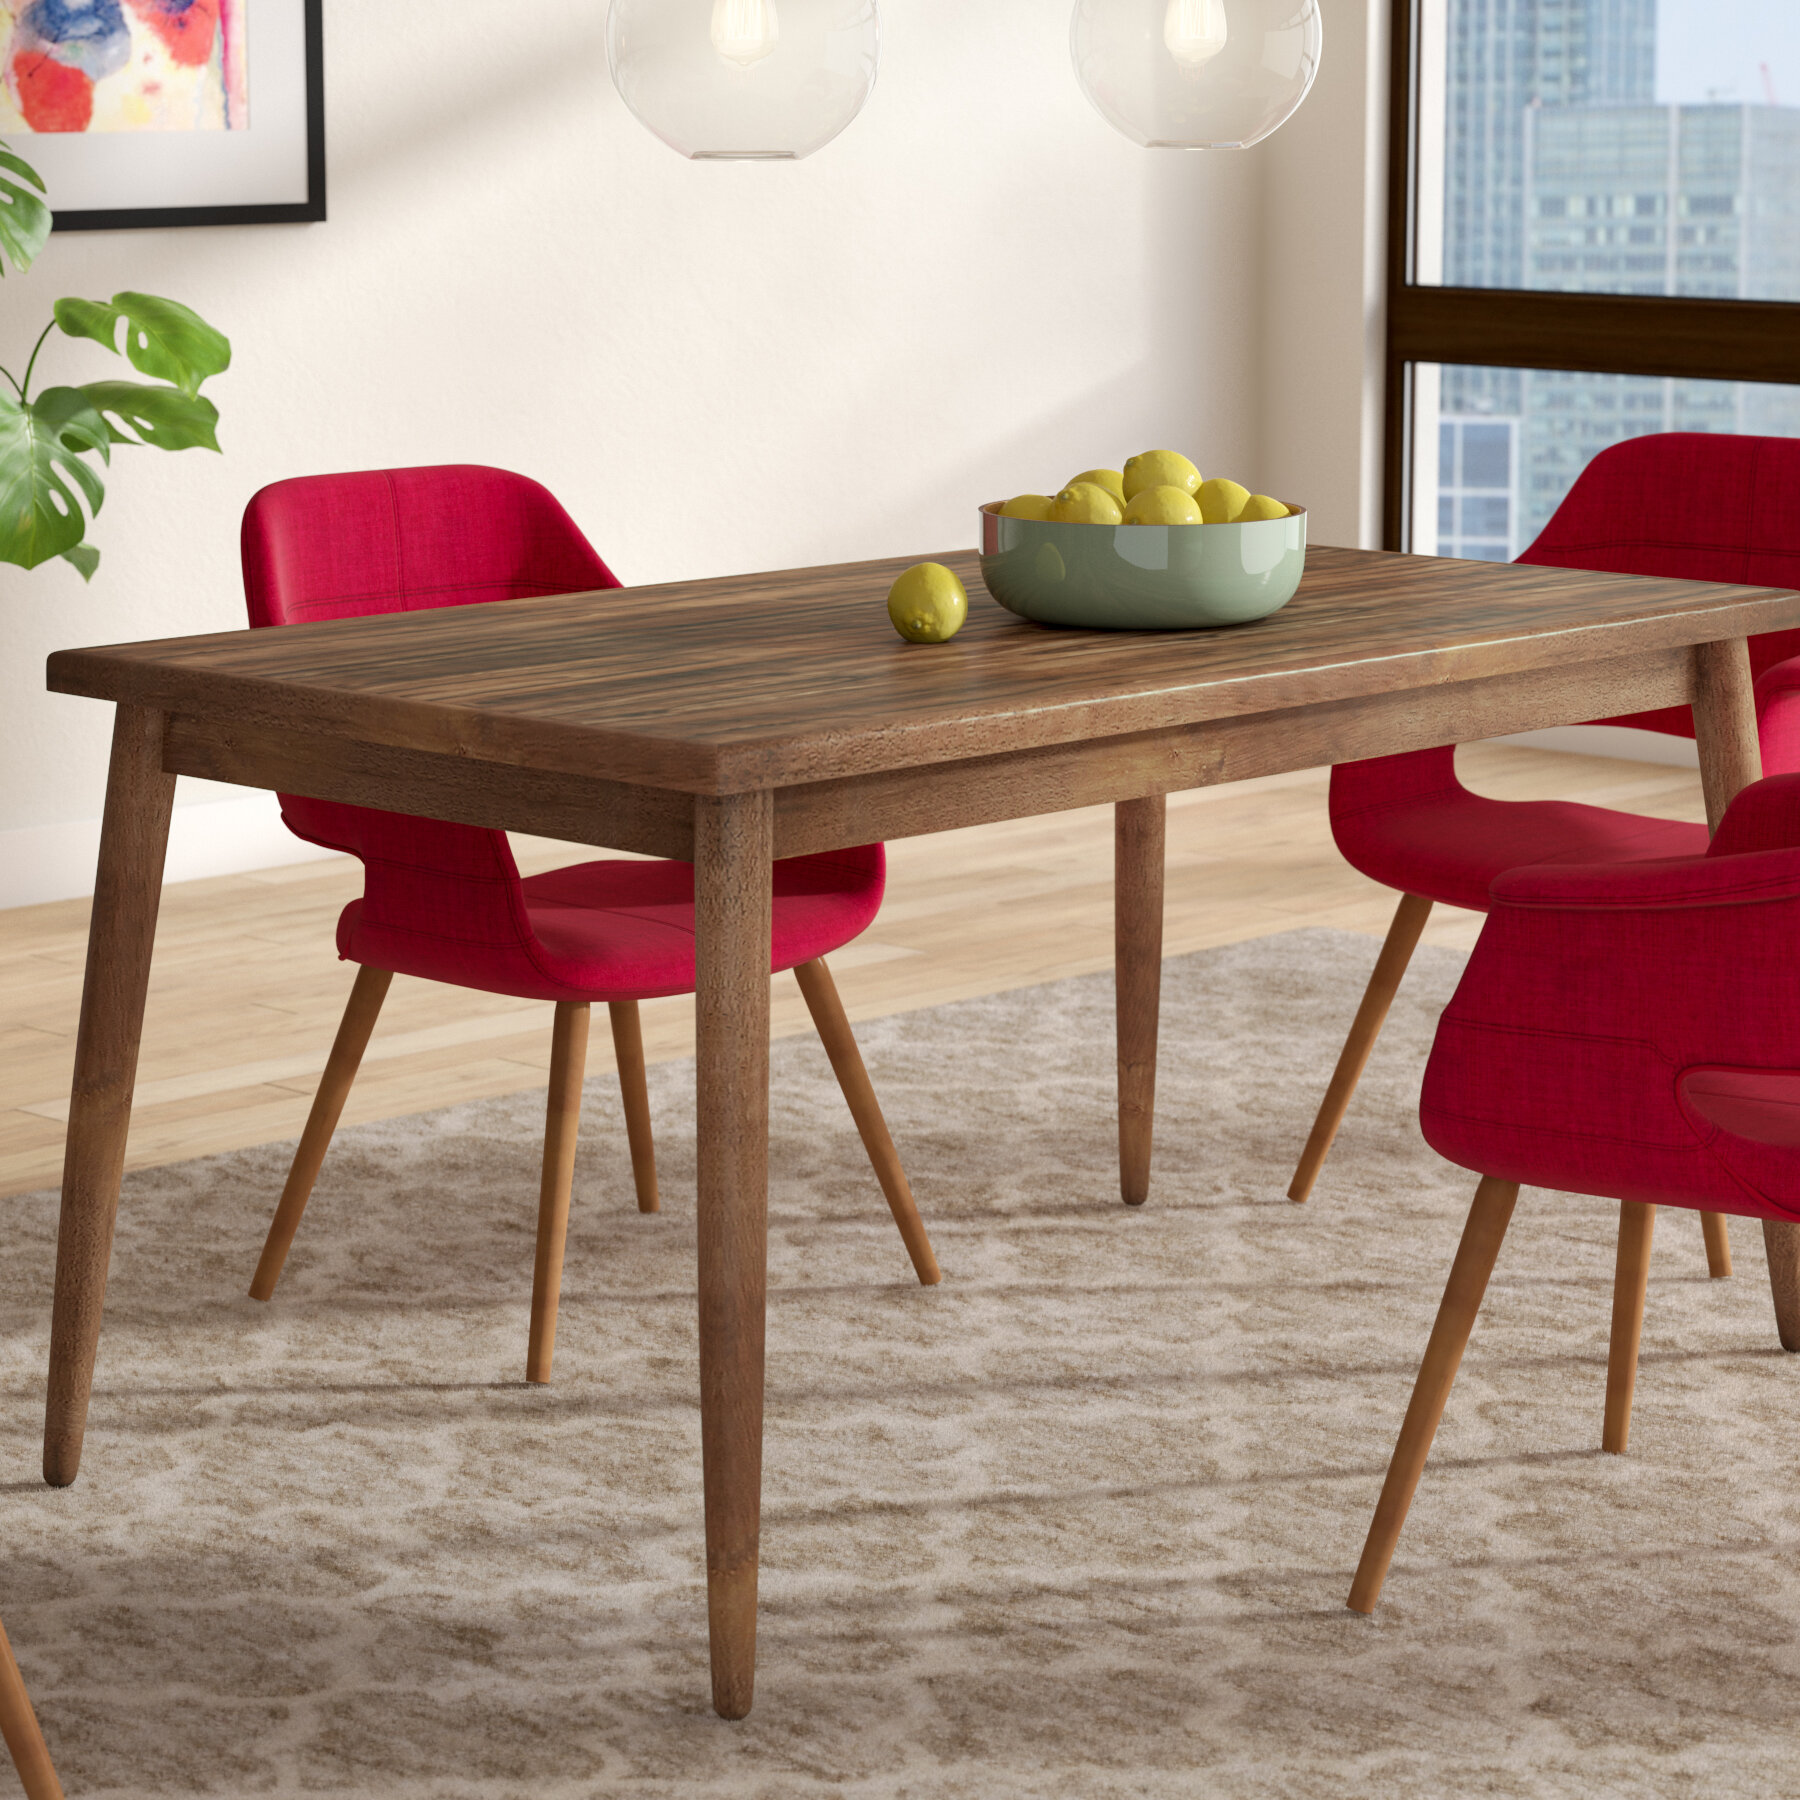 37fab54cce71 Langley Street Lydia Dining Table & Reviews | Wayfair